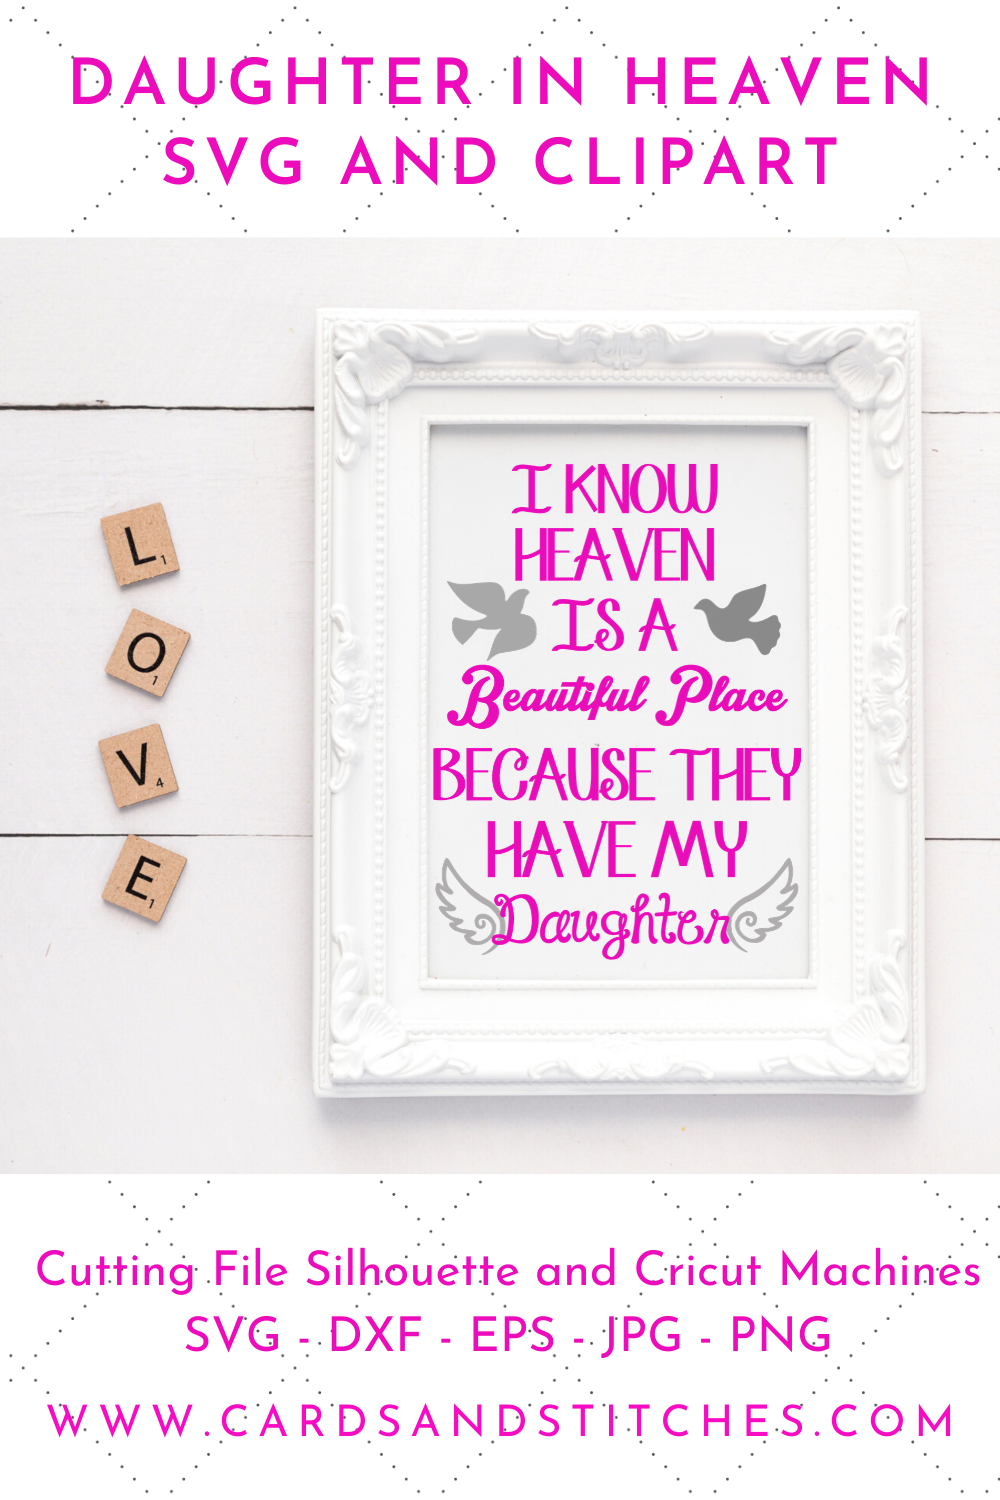 Download Daughter in Heaven SVG and Clipart, Great for Silhouette ...